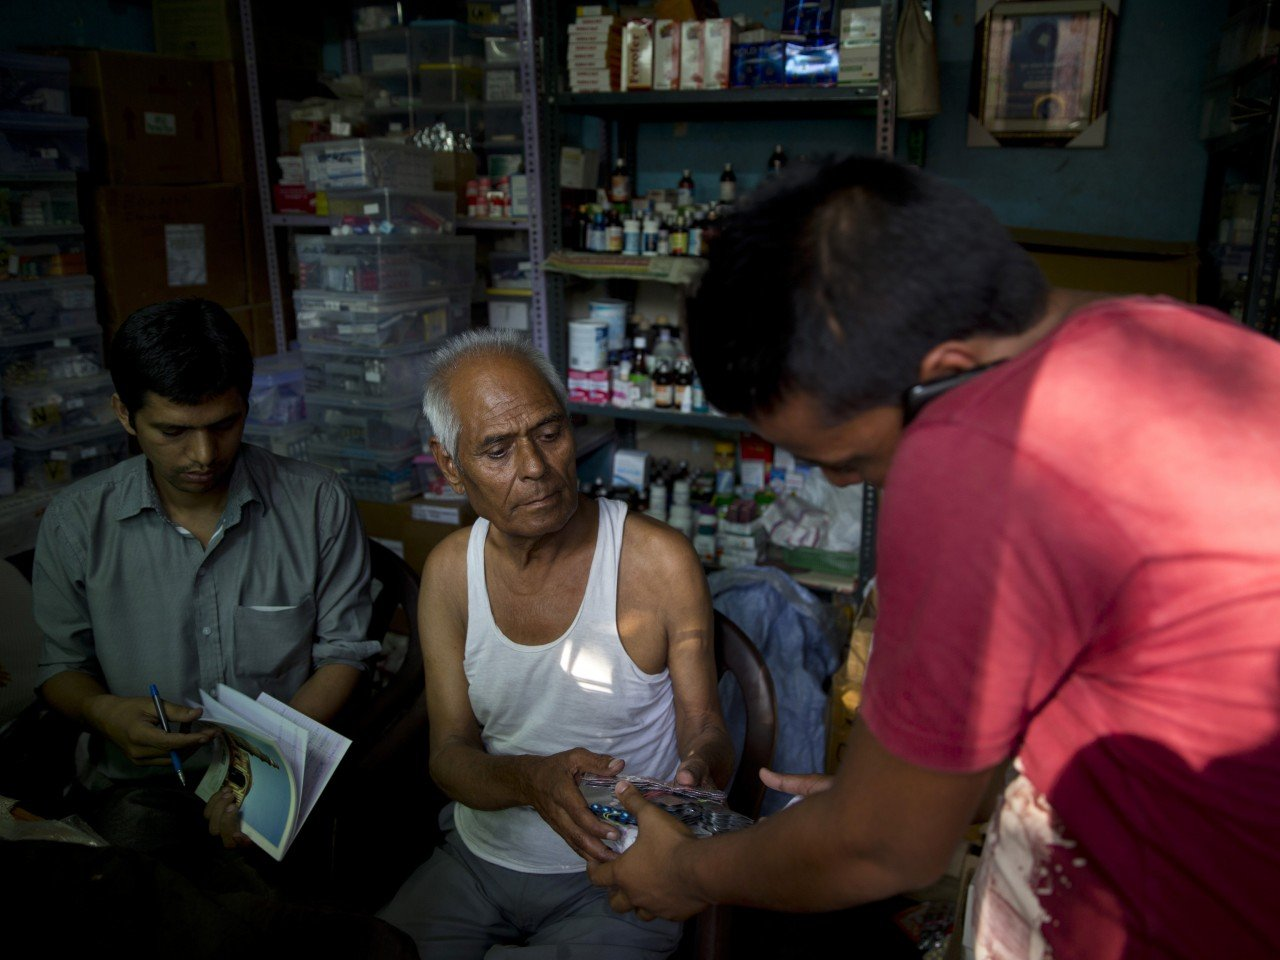 Medicine Baba Seeks Help From Delhi Govt To Offer 24/7 Free Medicines To The Poor